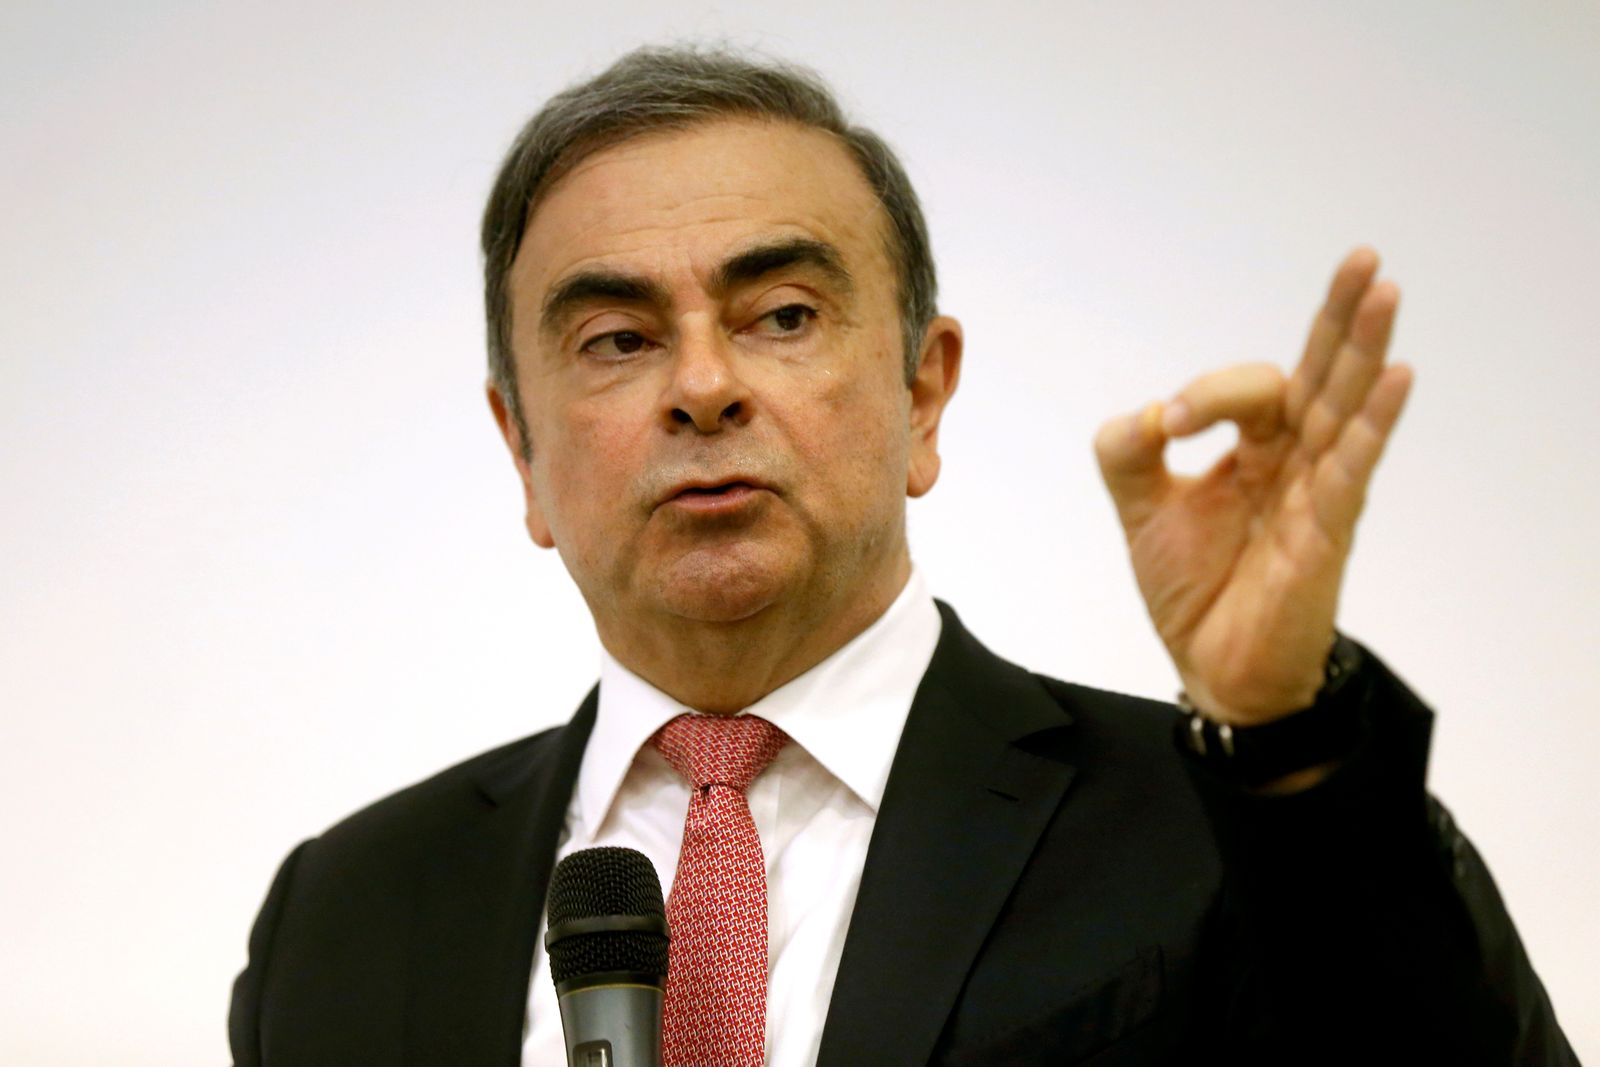 FILE PHOTO: Former Nissan chairman Carlos Ghosn gestures during a news conference at the Lebanese Press Syndicate in Beirut